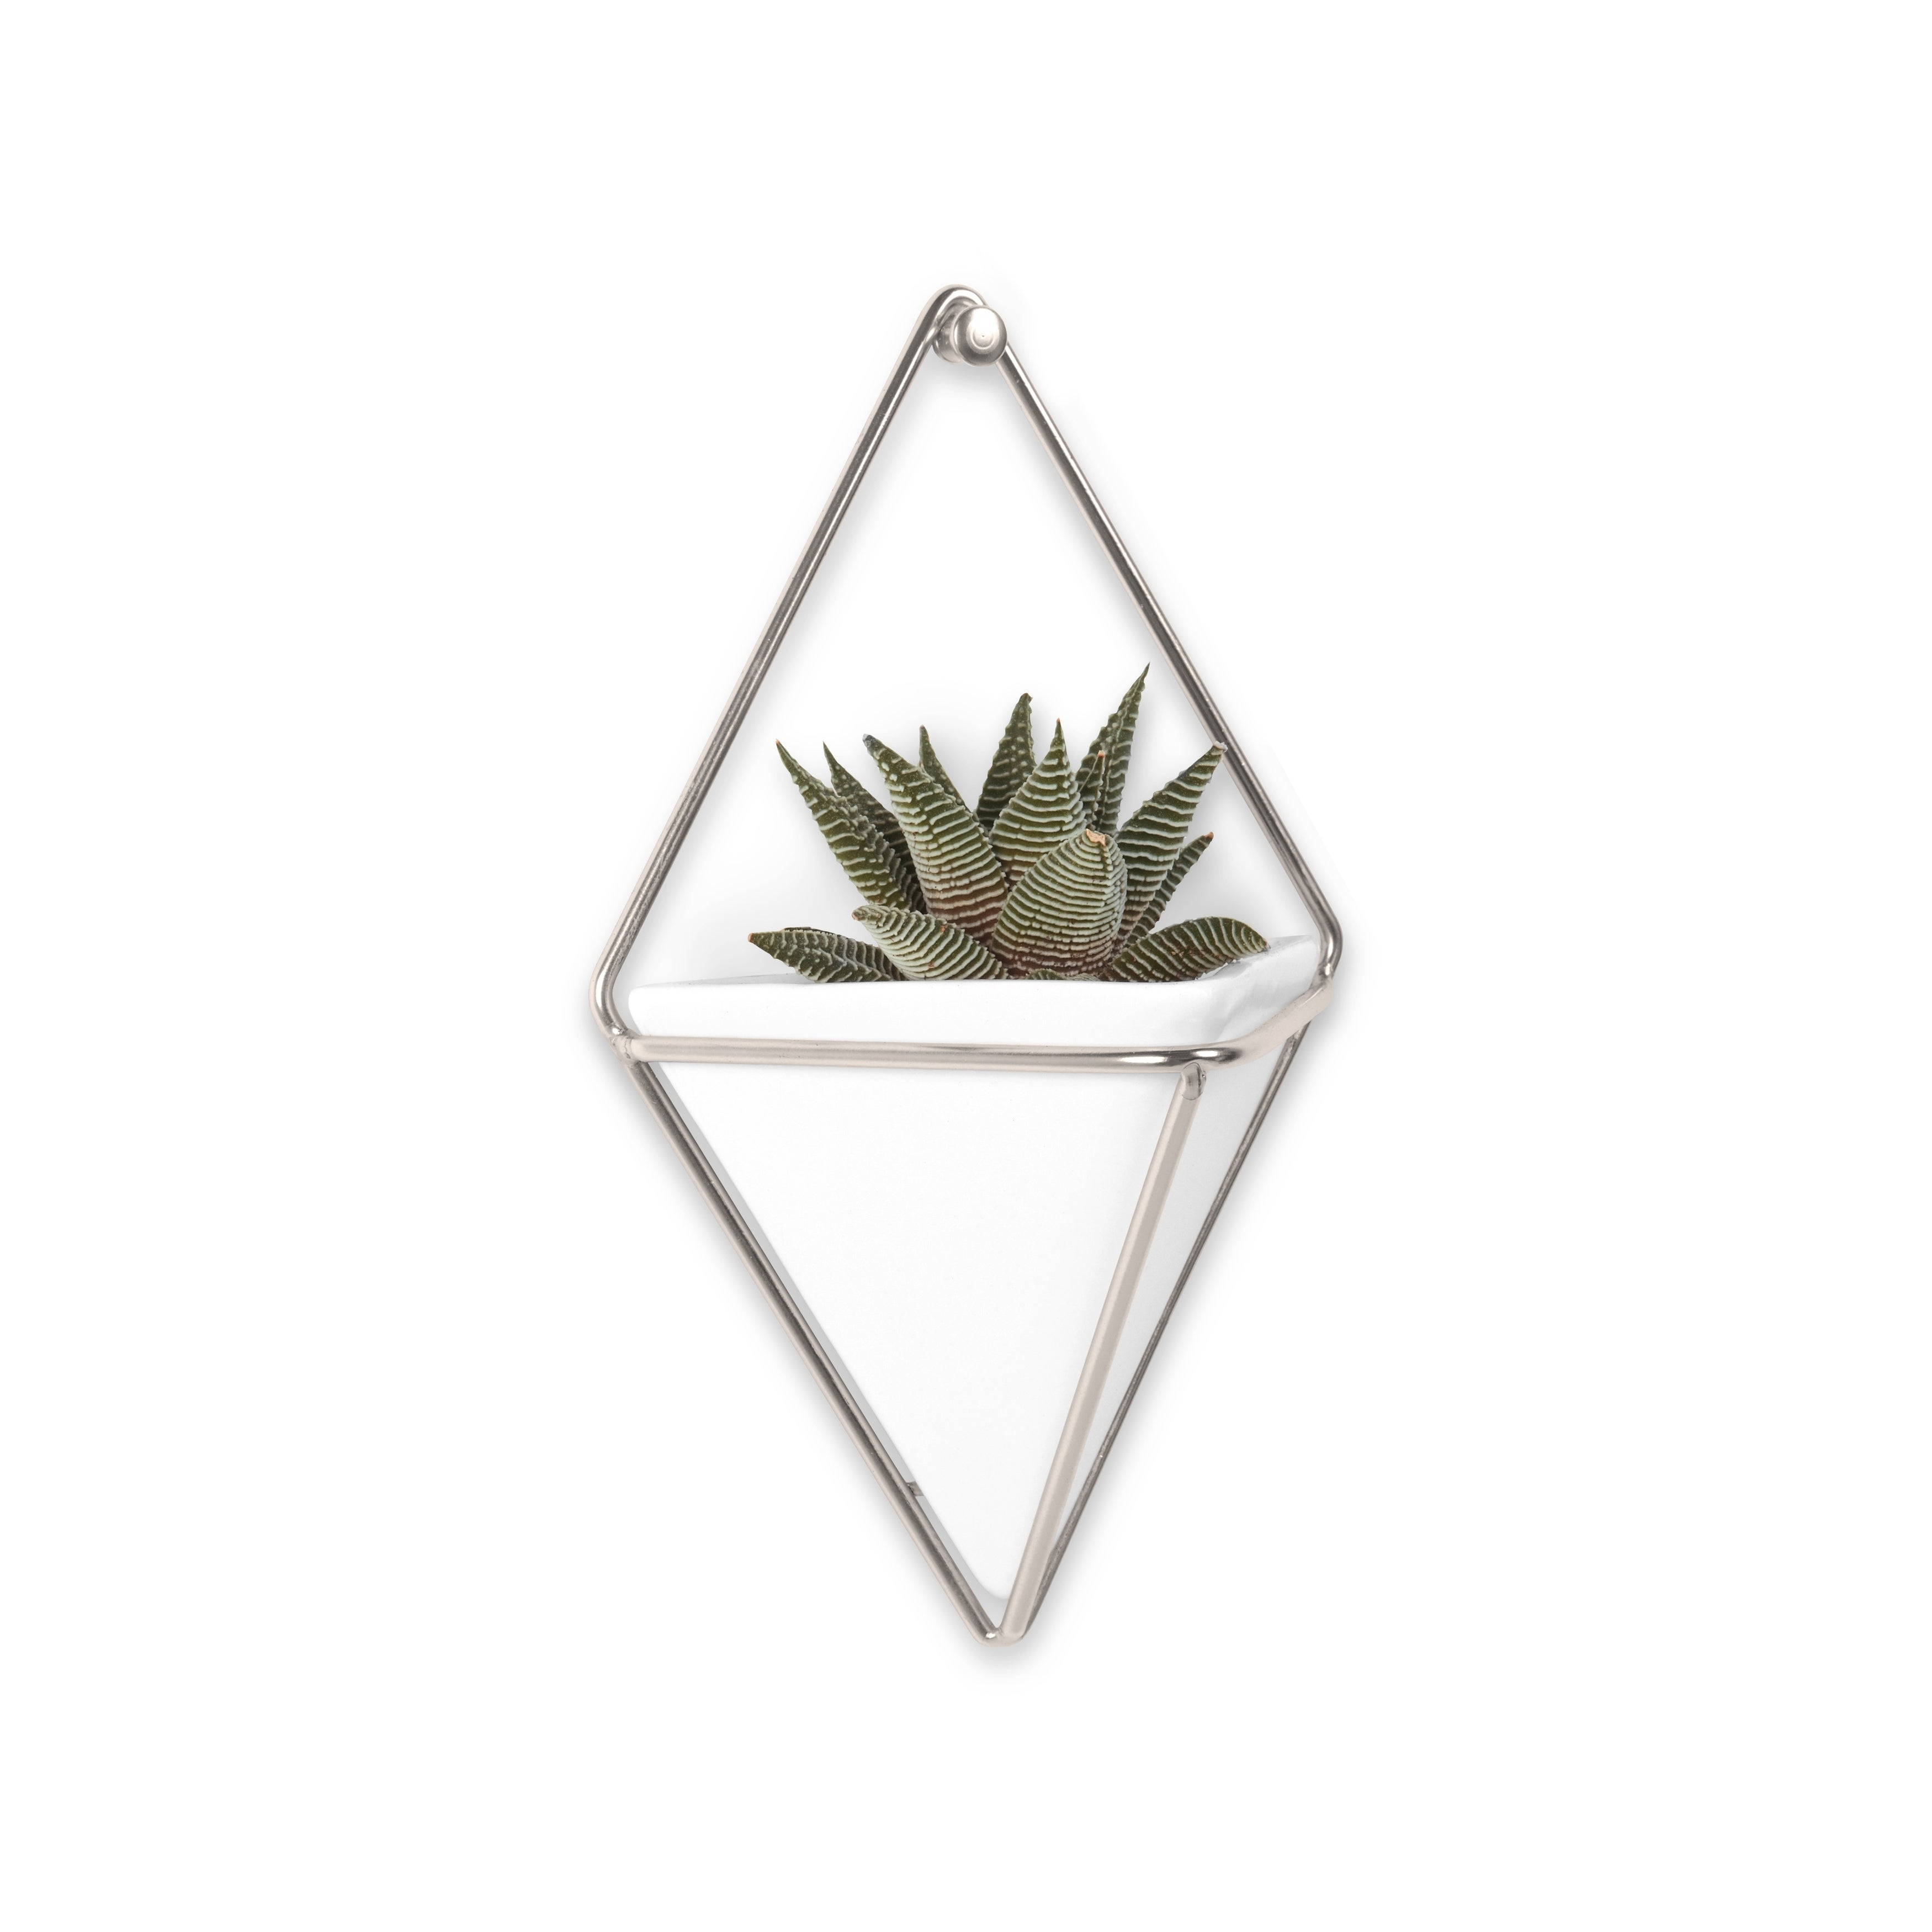 Shop Umbra Trigg Hanging Planter & Wall Decor (Set Of 2) – Free Throughout Latest 2 Piece Trigg Wall Decor Sets (Set Of 2) (Gallery 8 of 20)